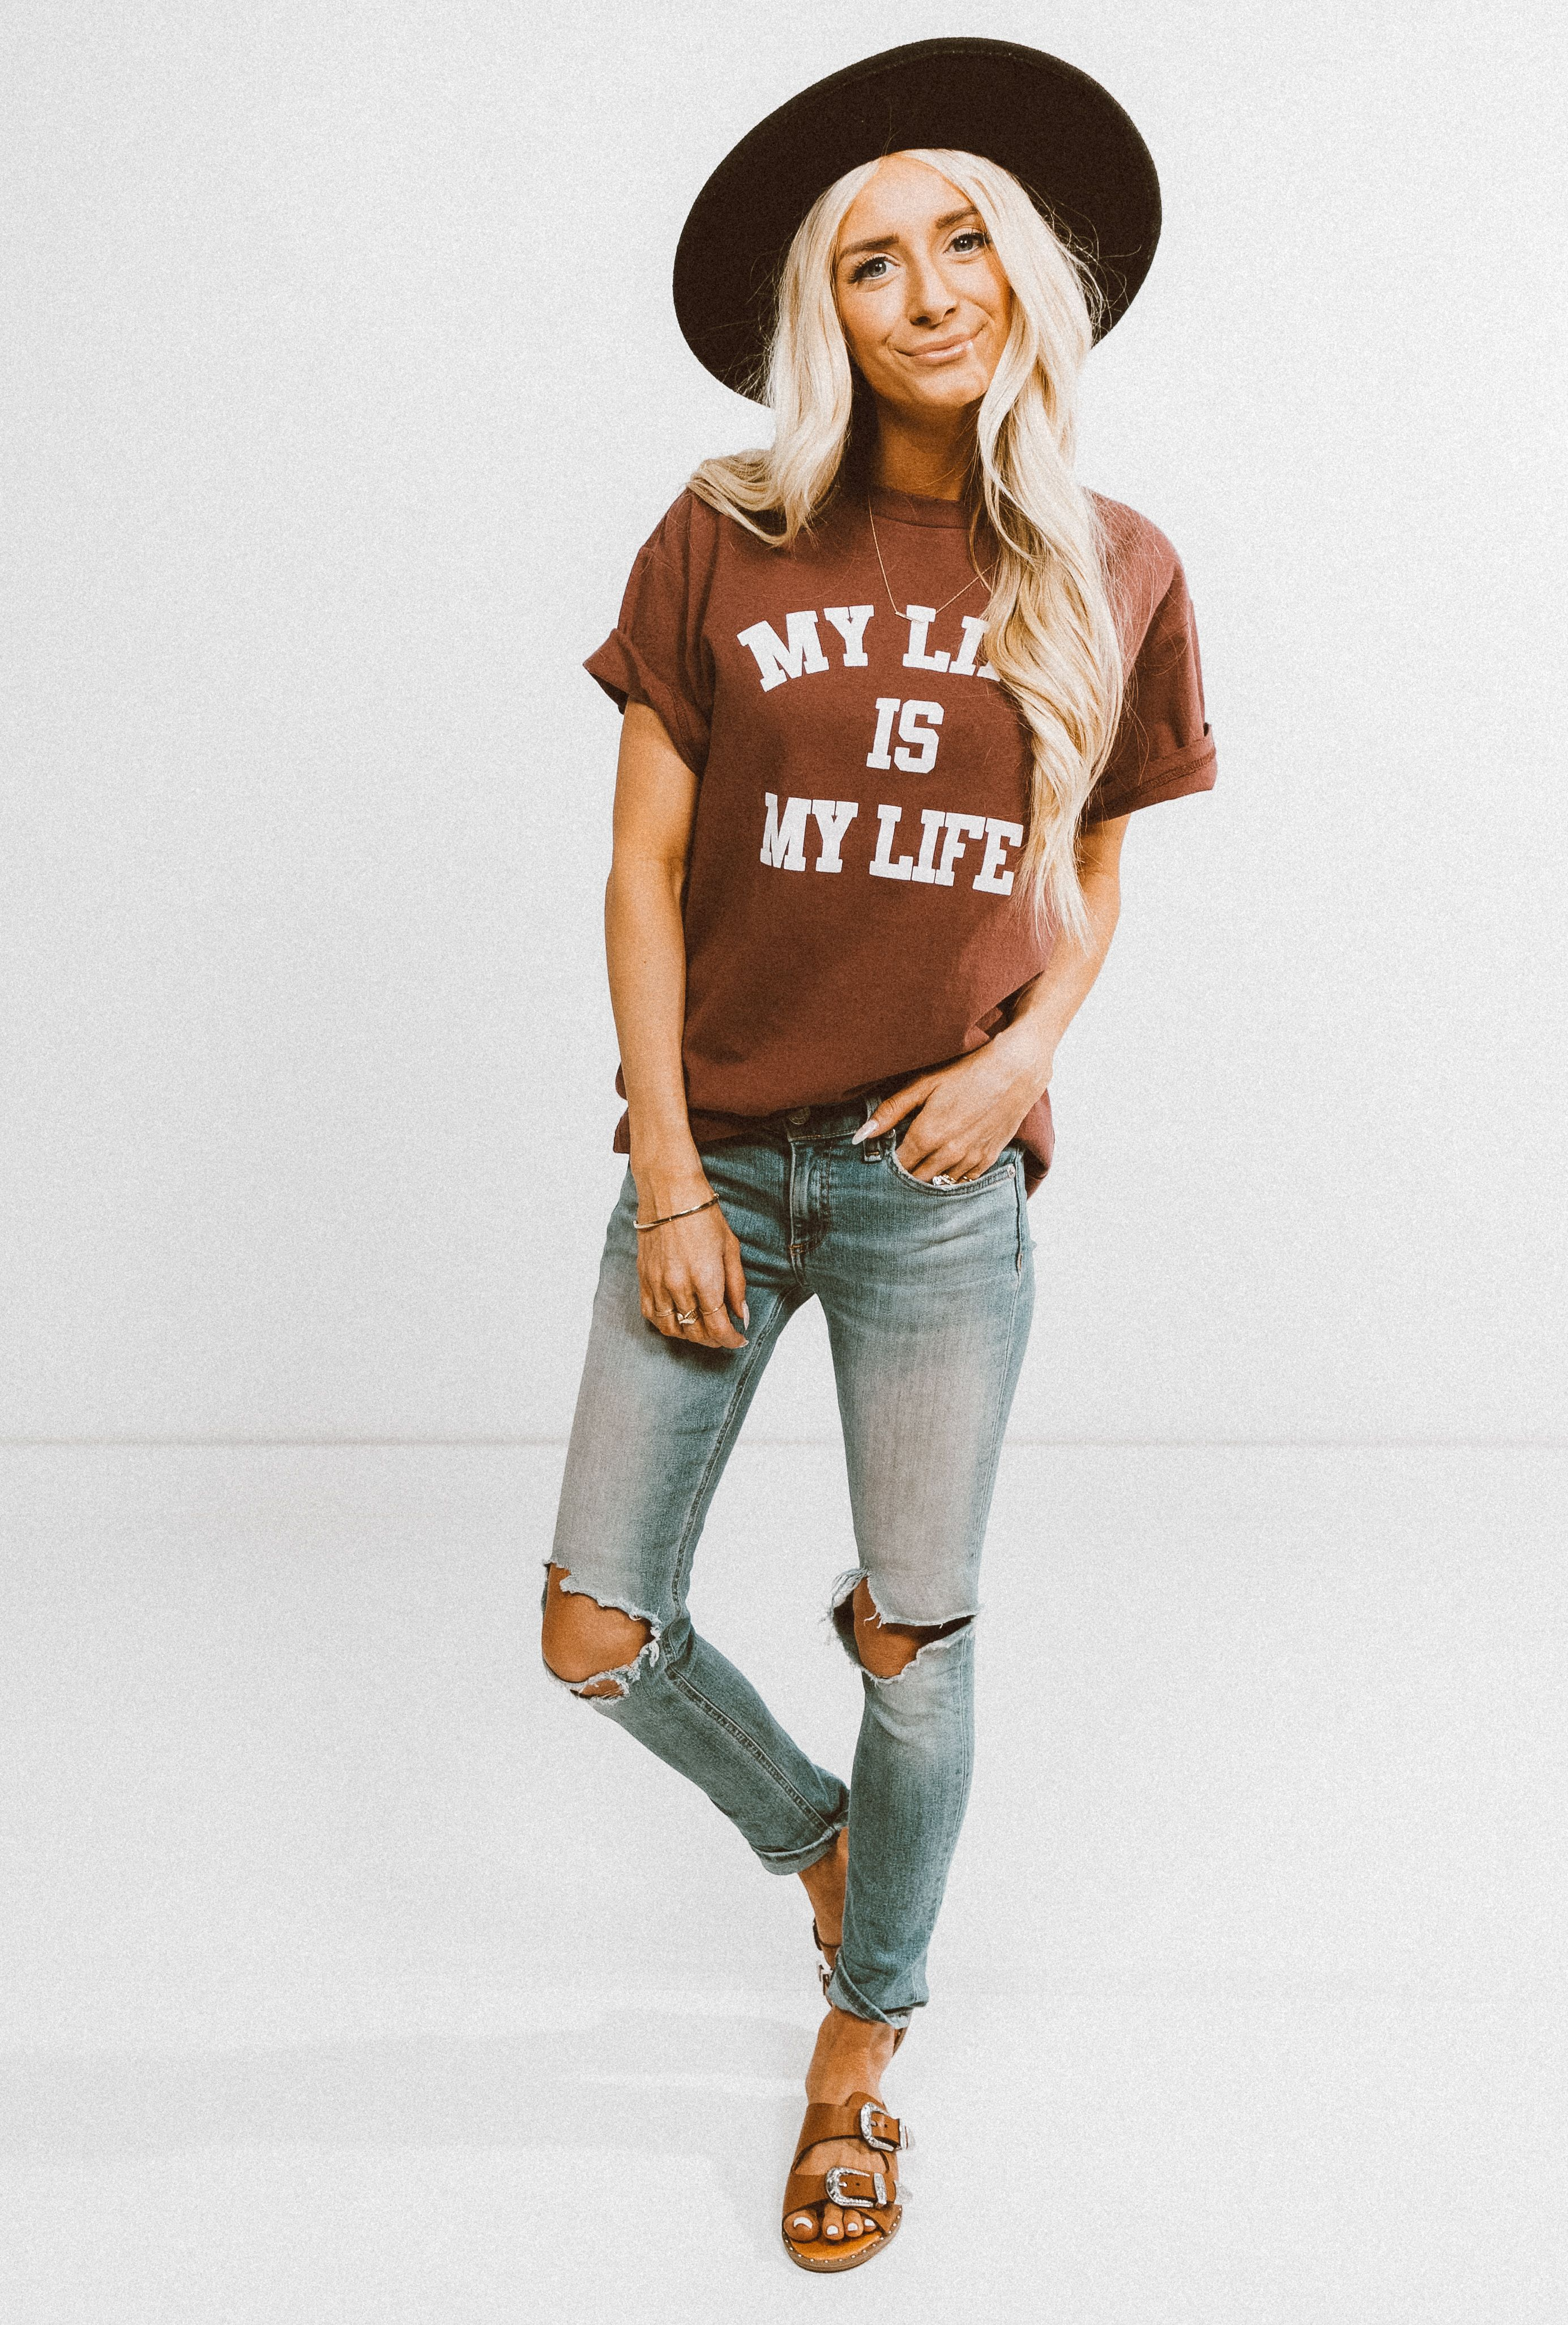 b664a08fe190 graphic tee 2018 trend    shop stevie hender summer outfit